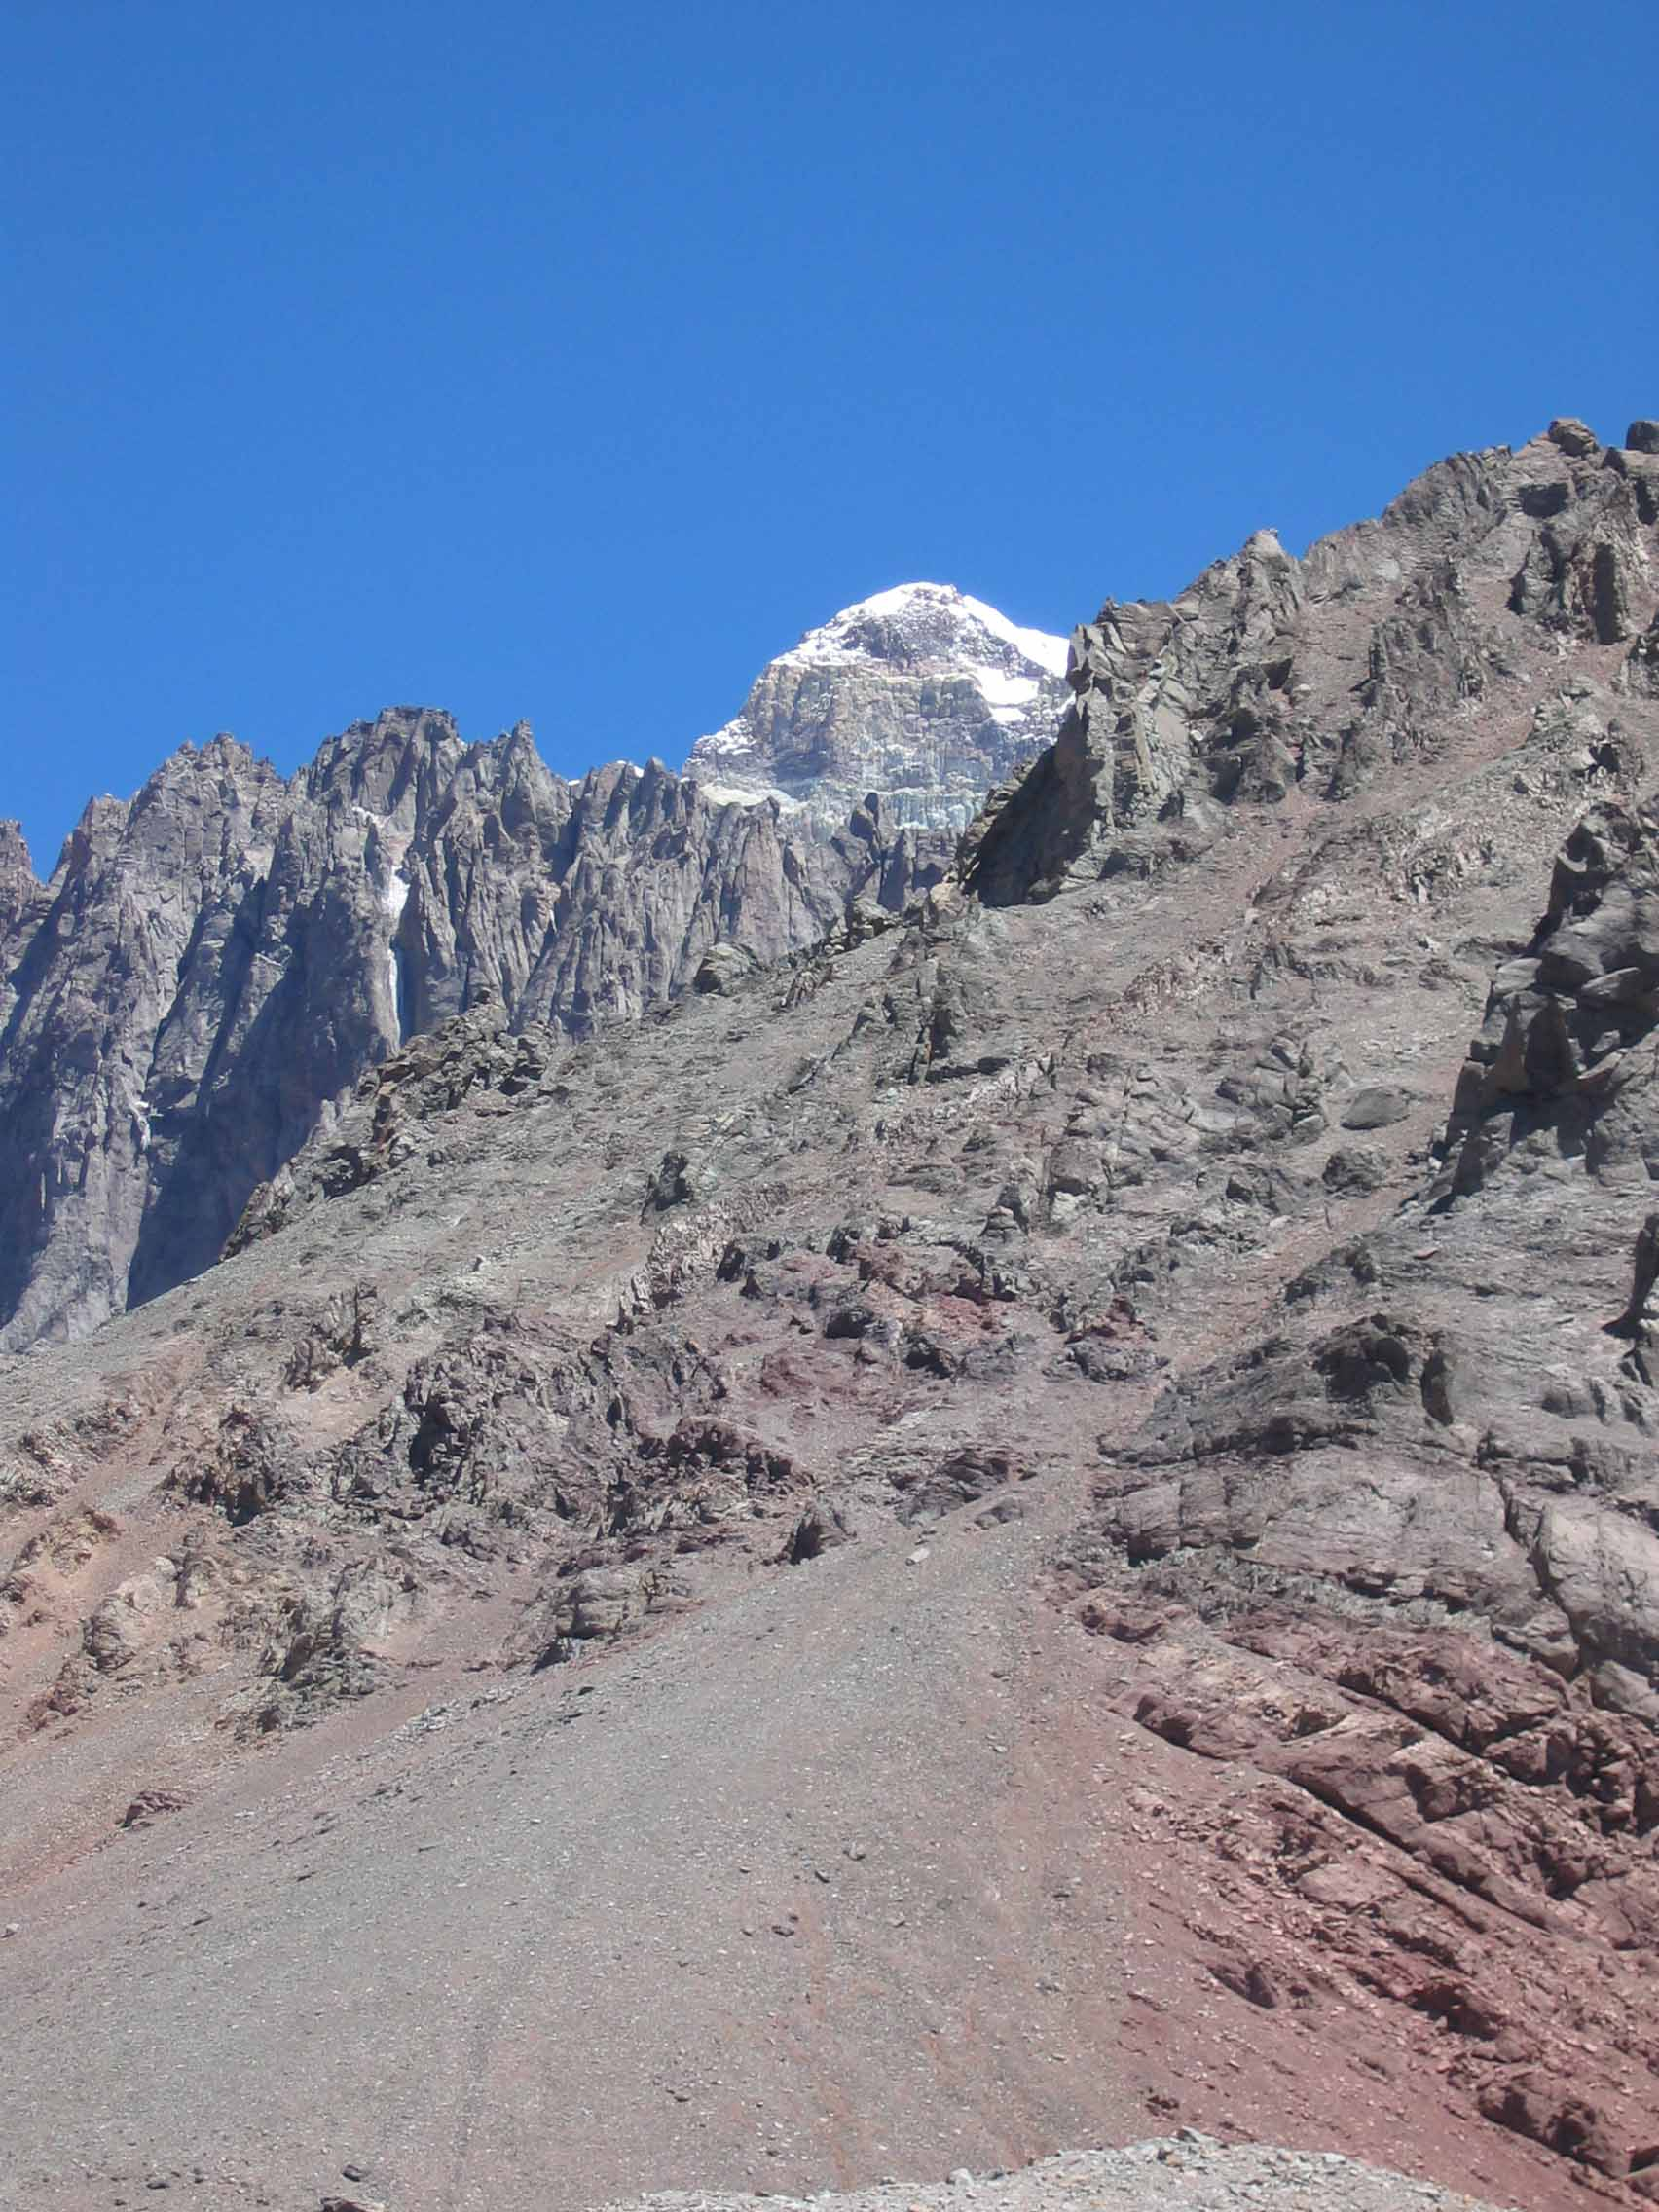 Cool shot of Aconcagua.